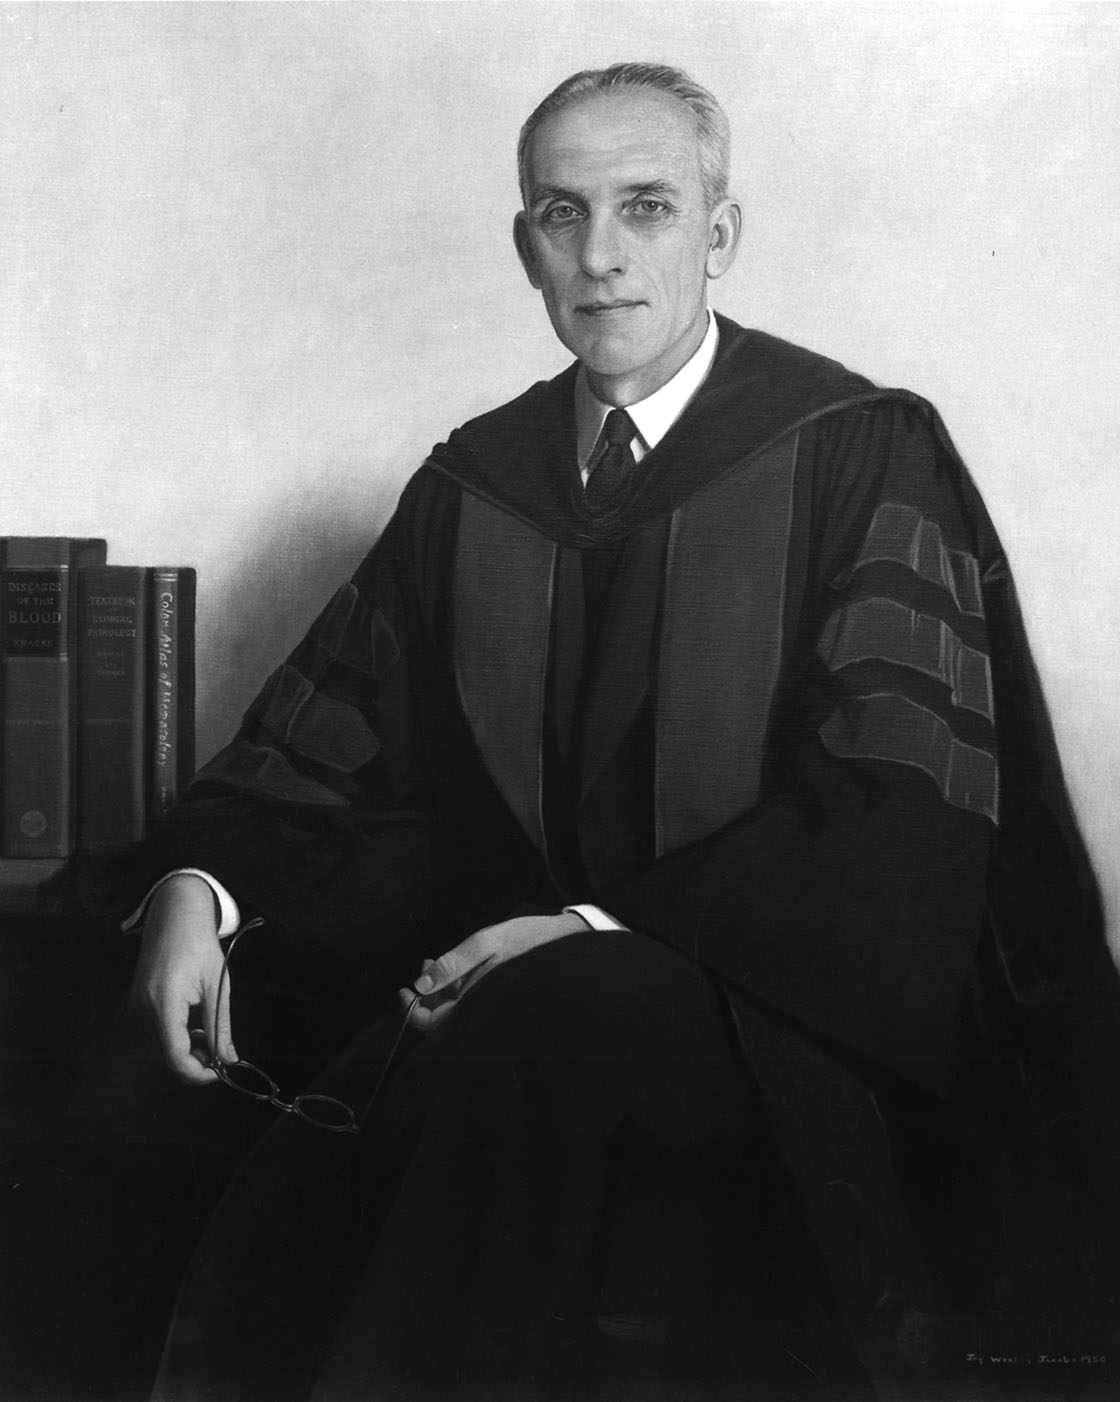 1944-Roy R. Kracke Becomes First Dean of the Medical School